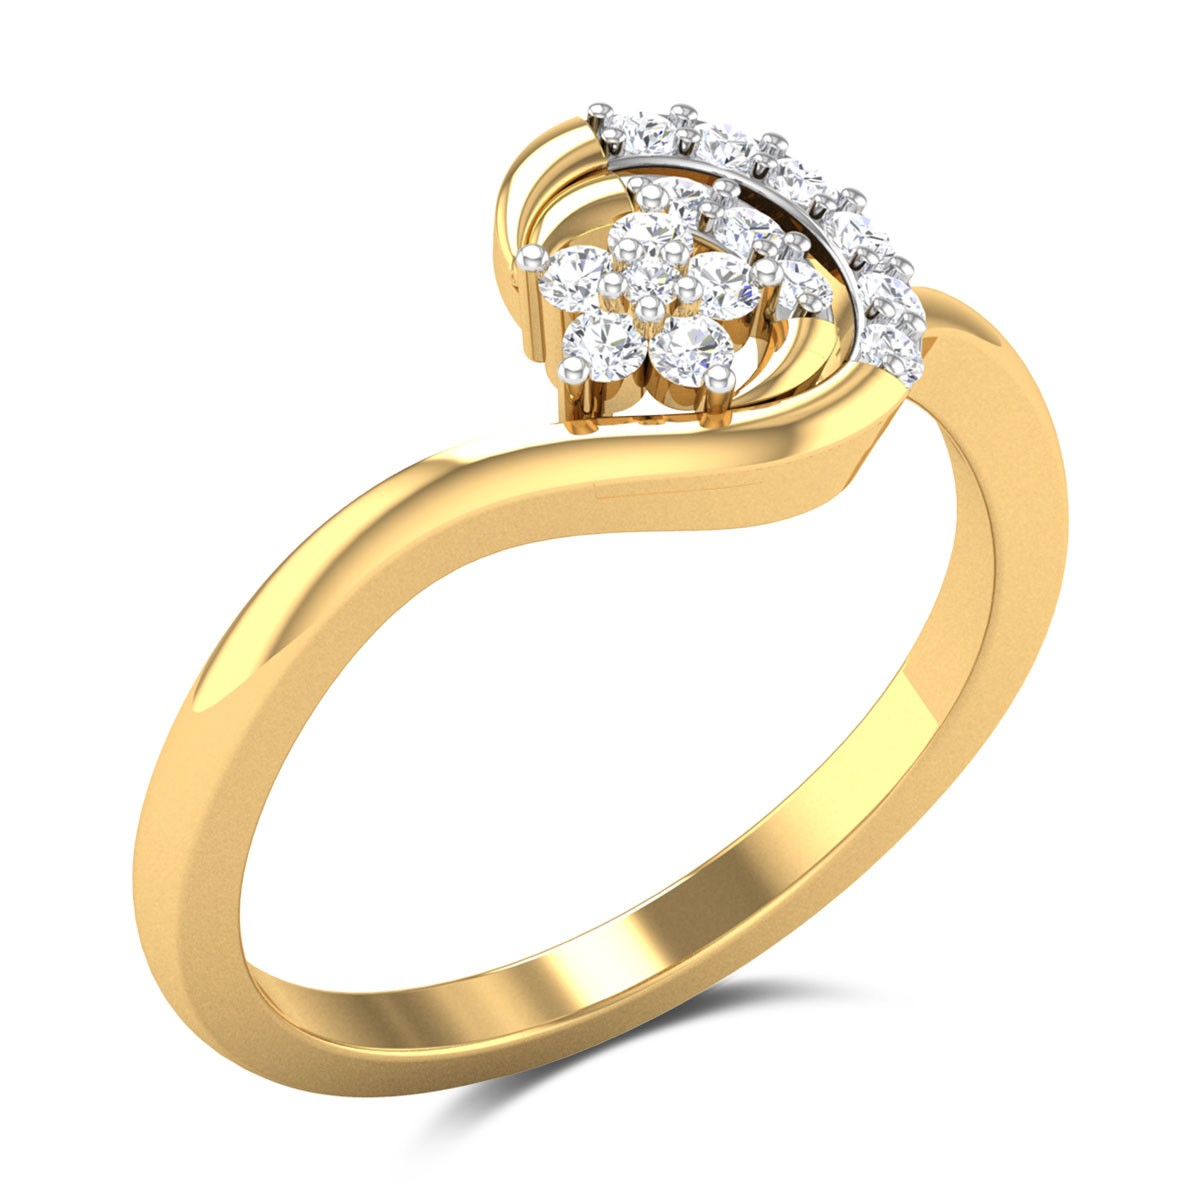 Dillan Diamond Ring